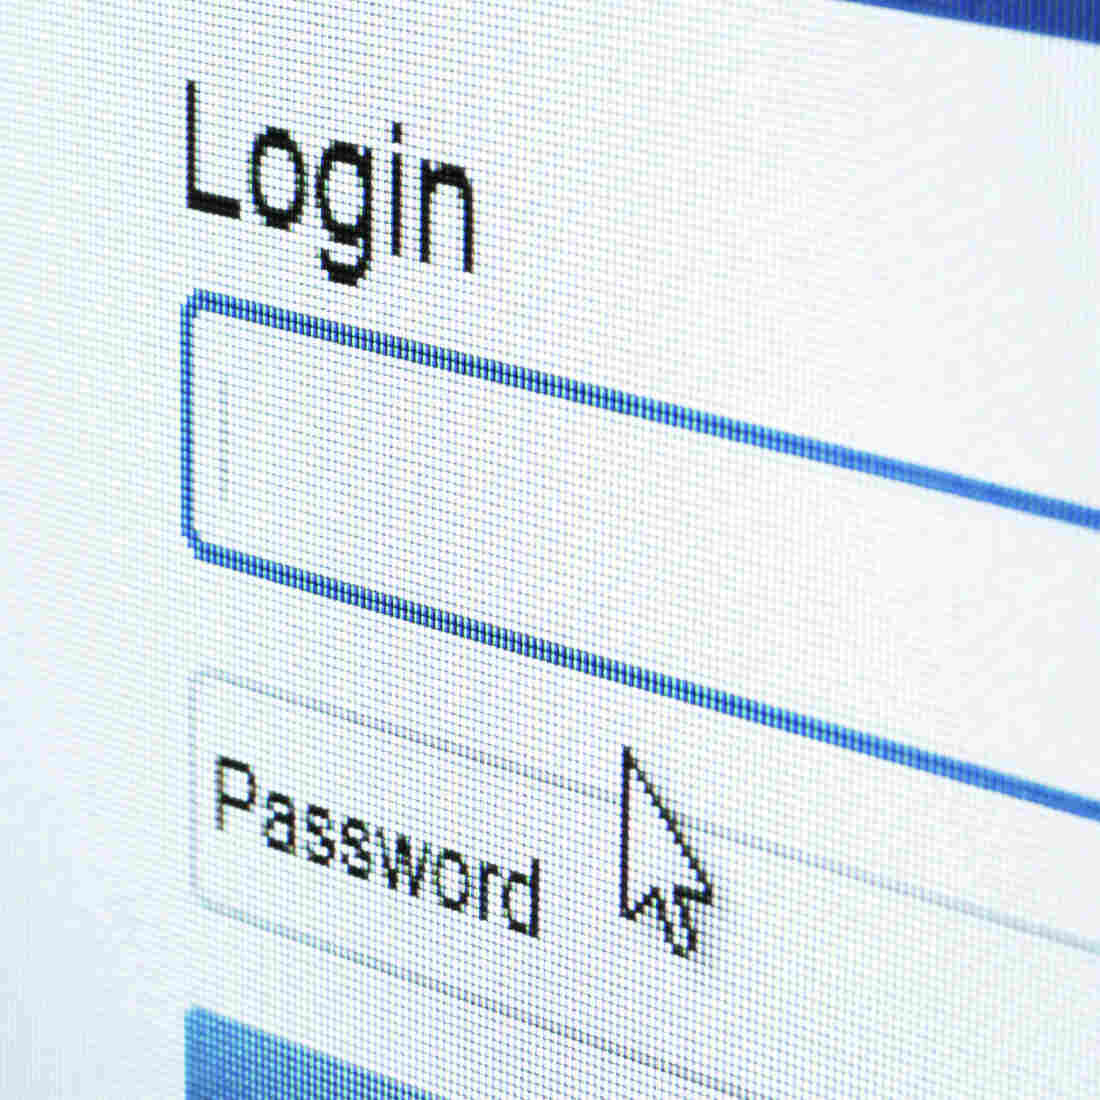 Your crafty password may not be powerful enough to overcome a cyberattacker. Earlier this month, LinkedIn urged its users to change their passwords after a database was hacked, exposing millions of passwords.